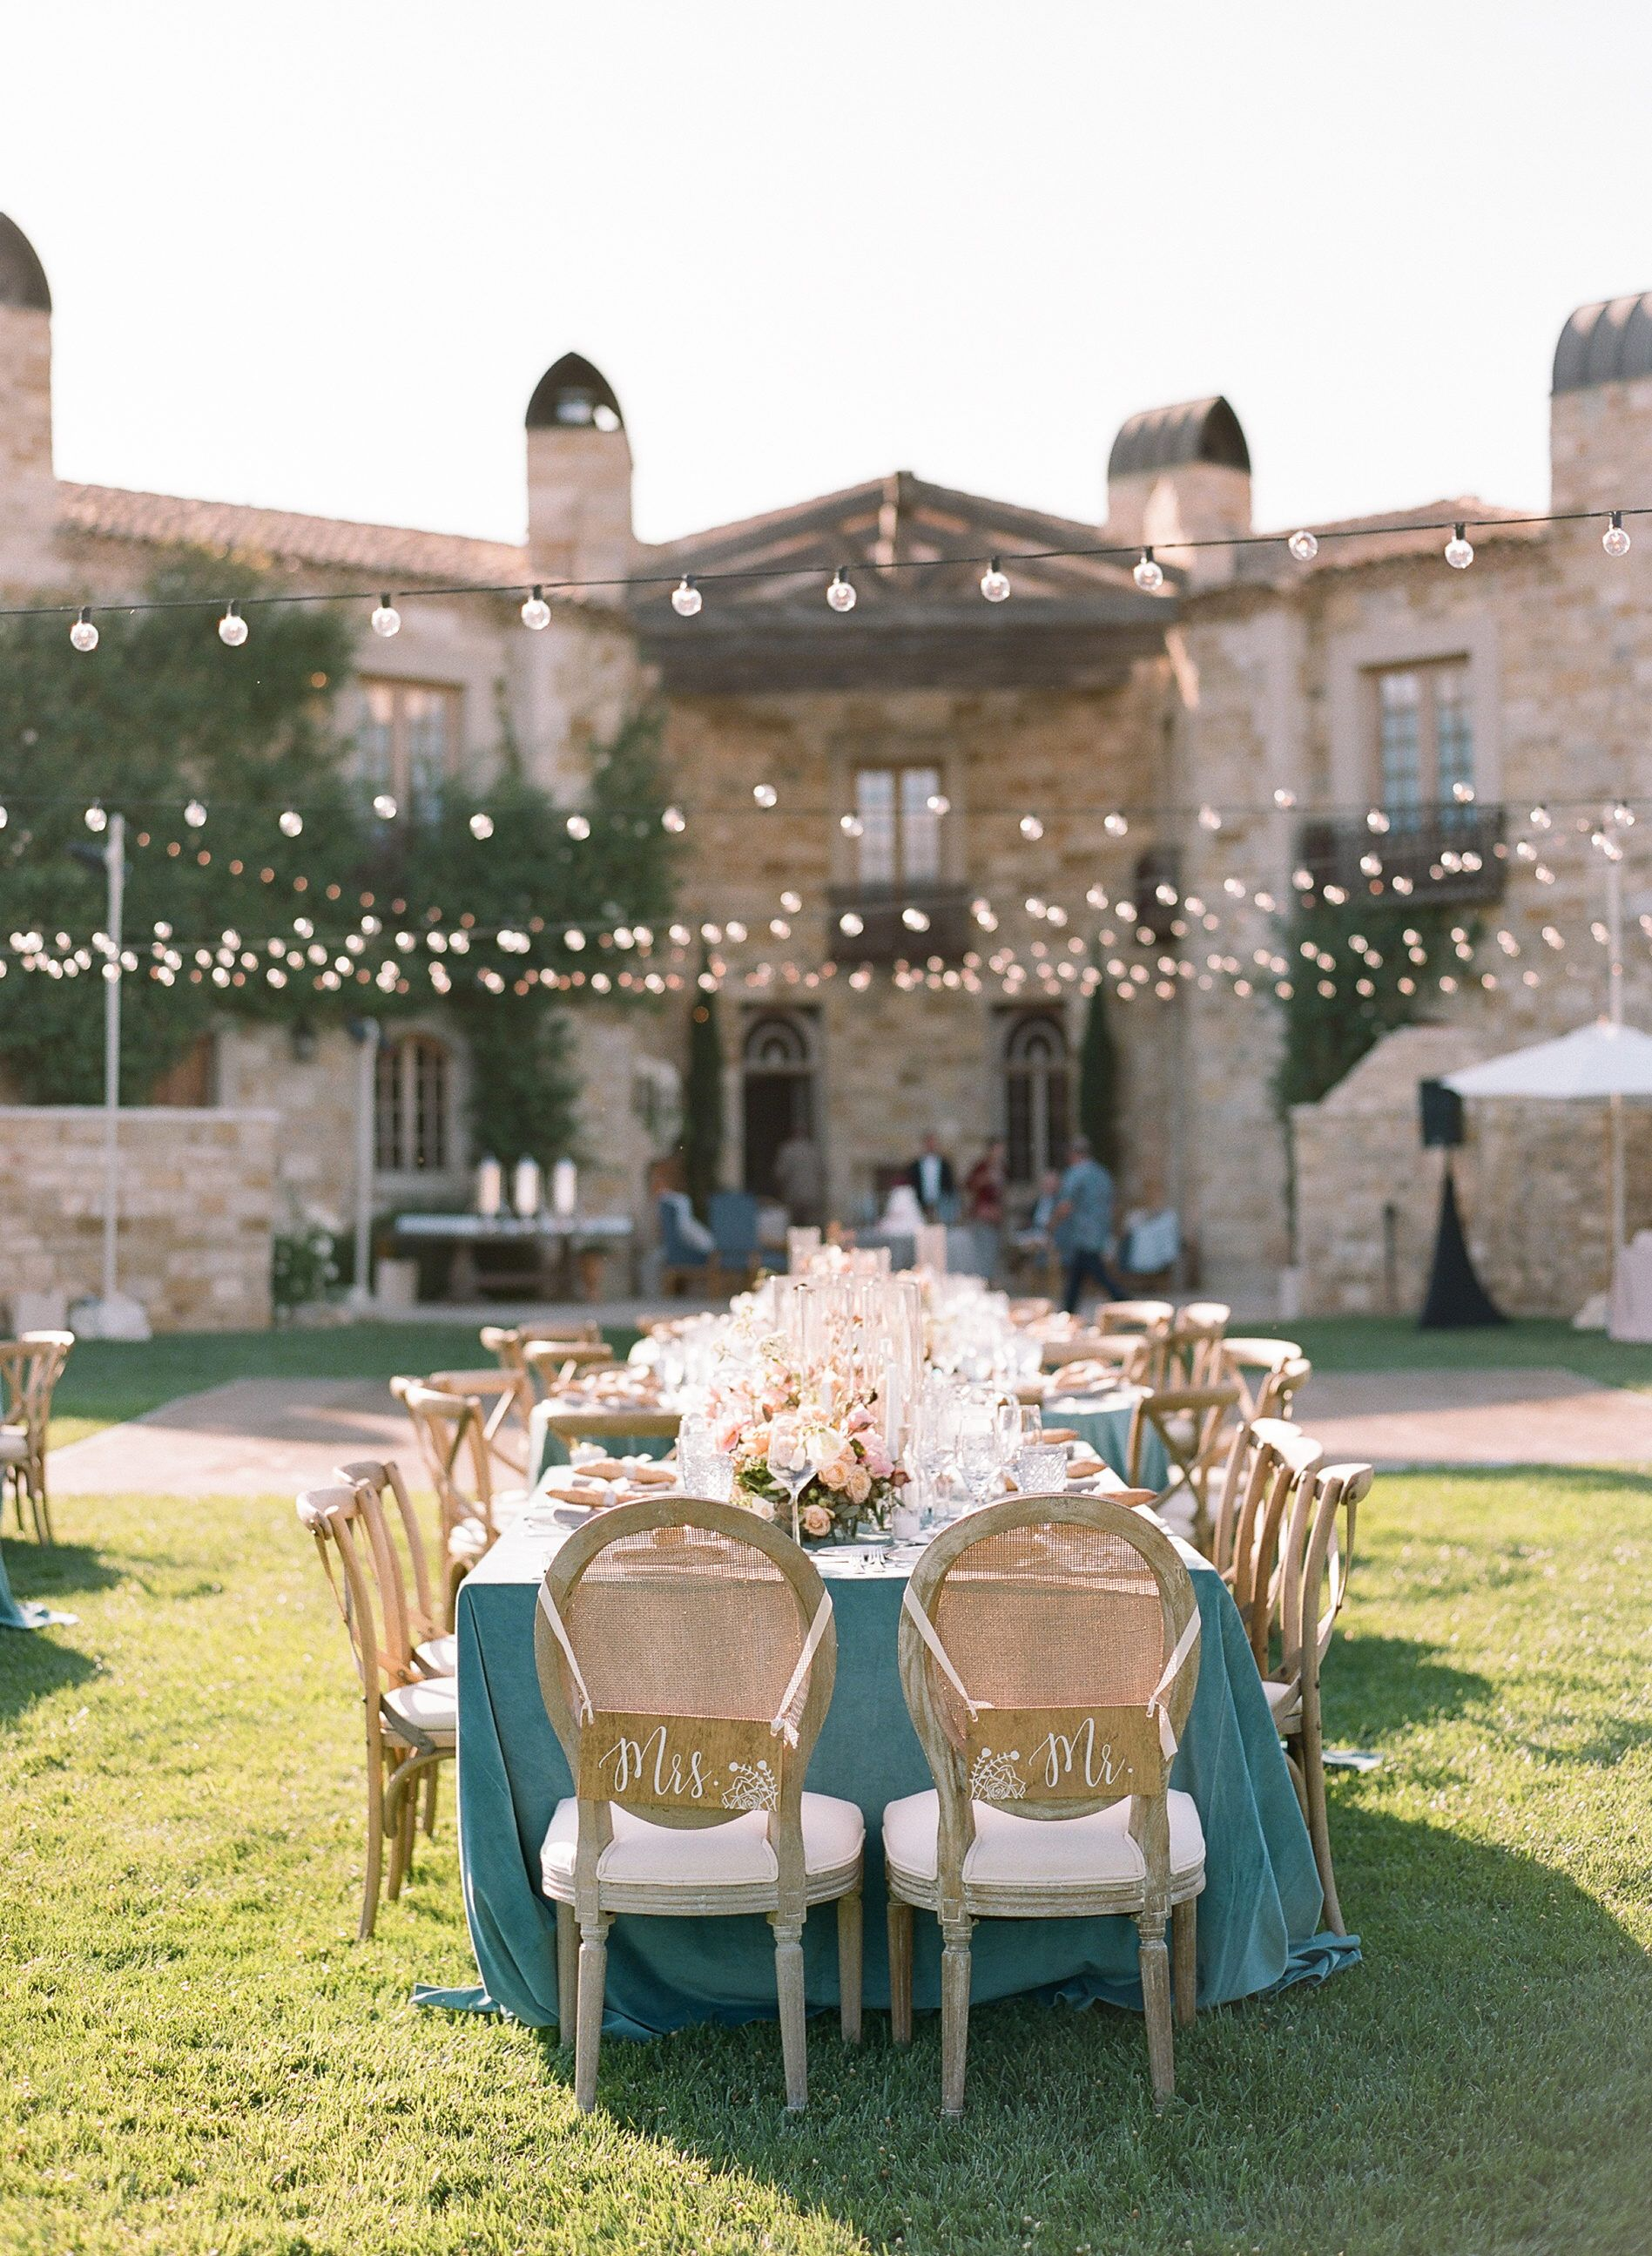 The Villa at Sunstone Inspired This Couple's Wedding Style ...